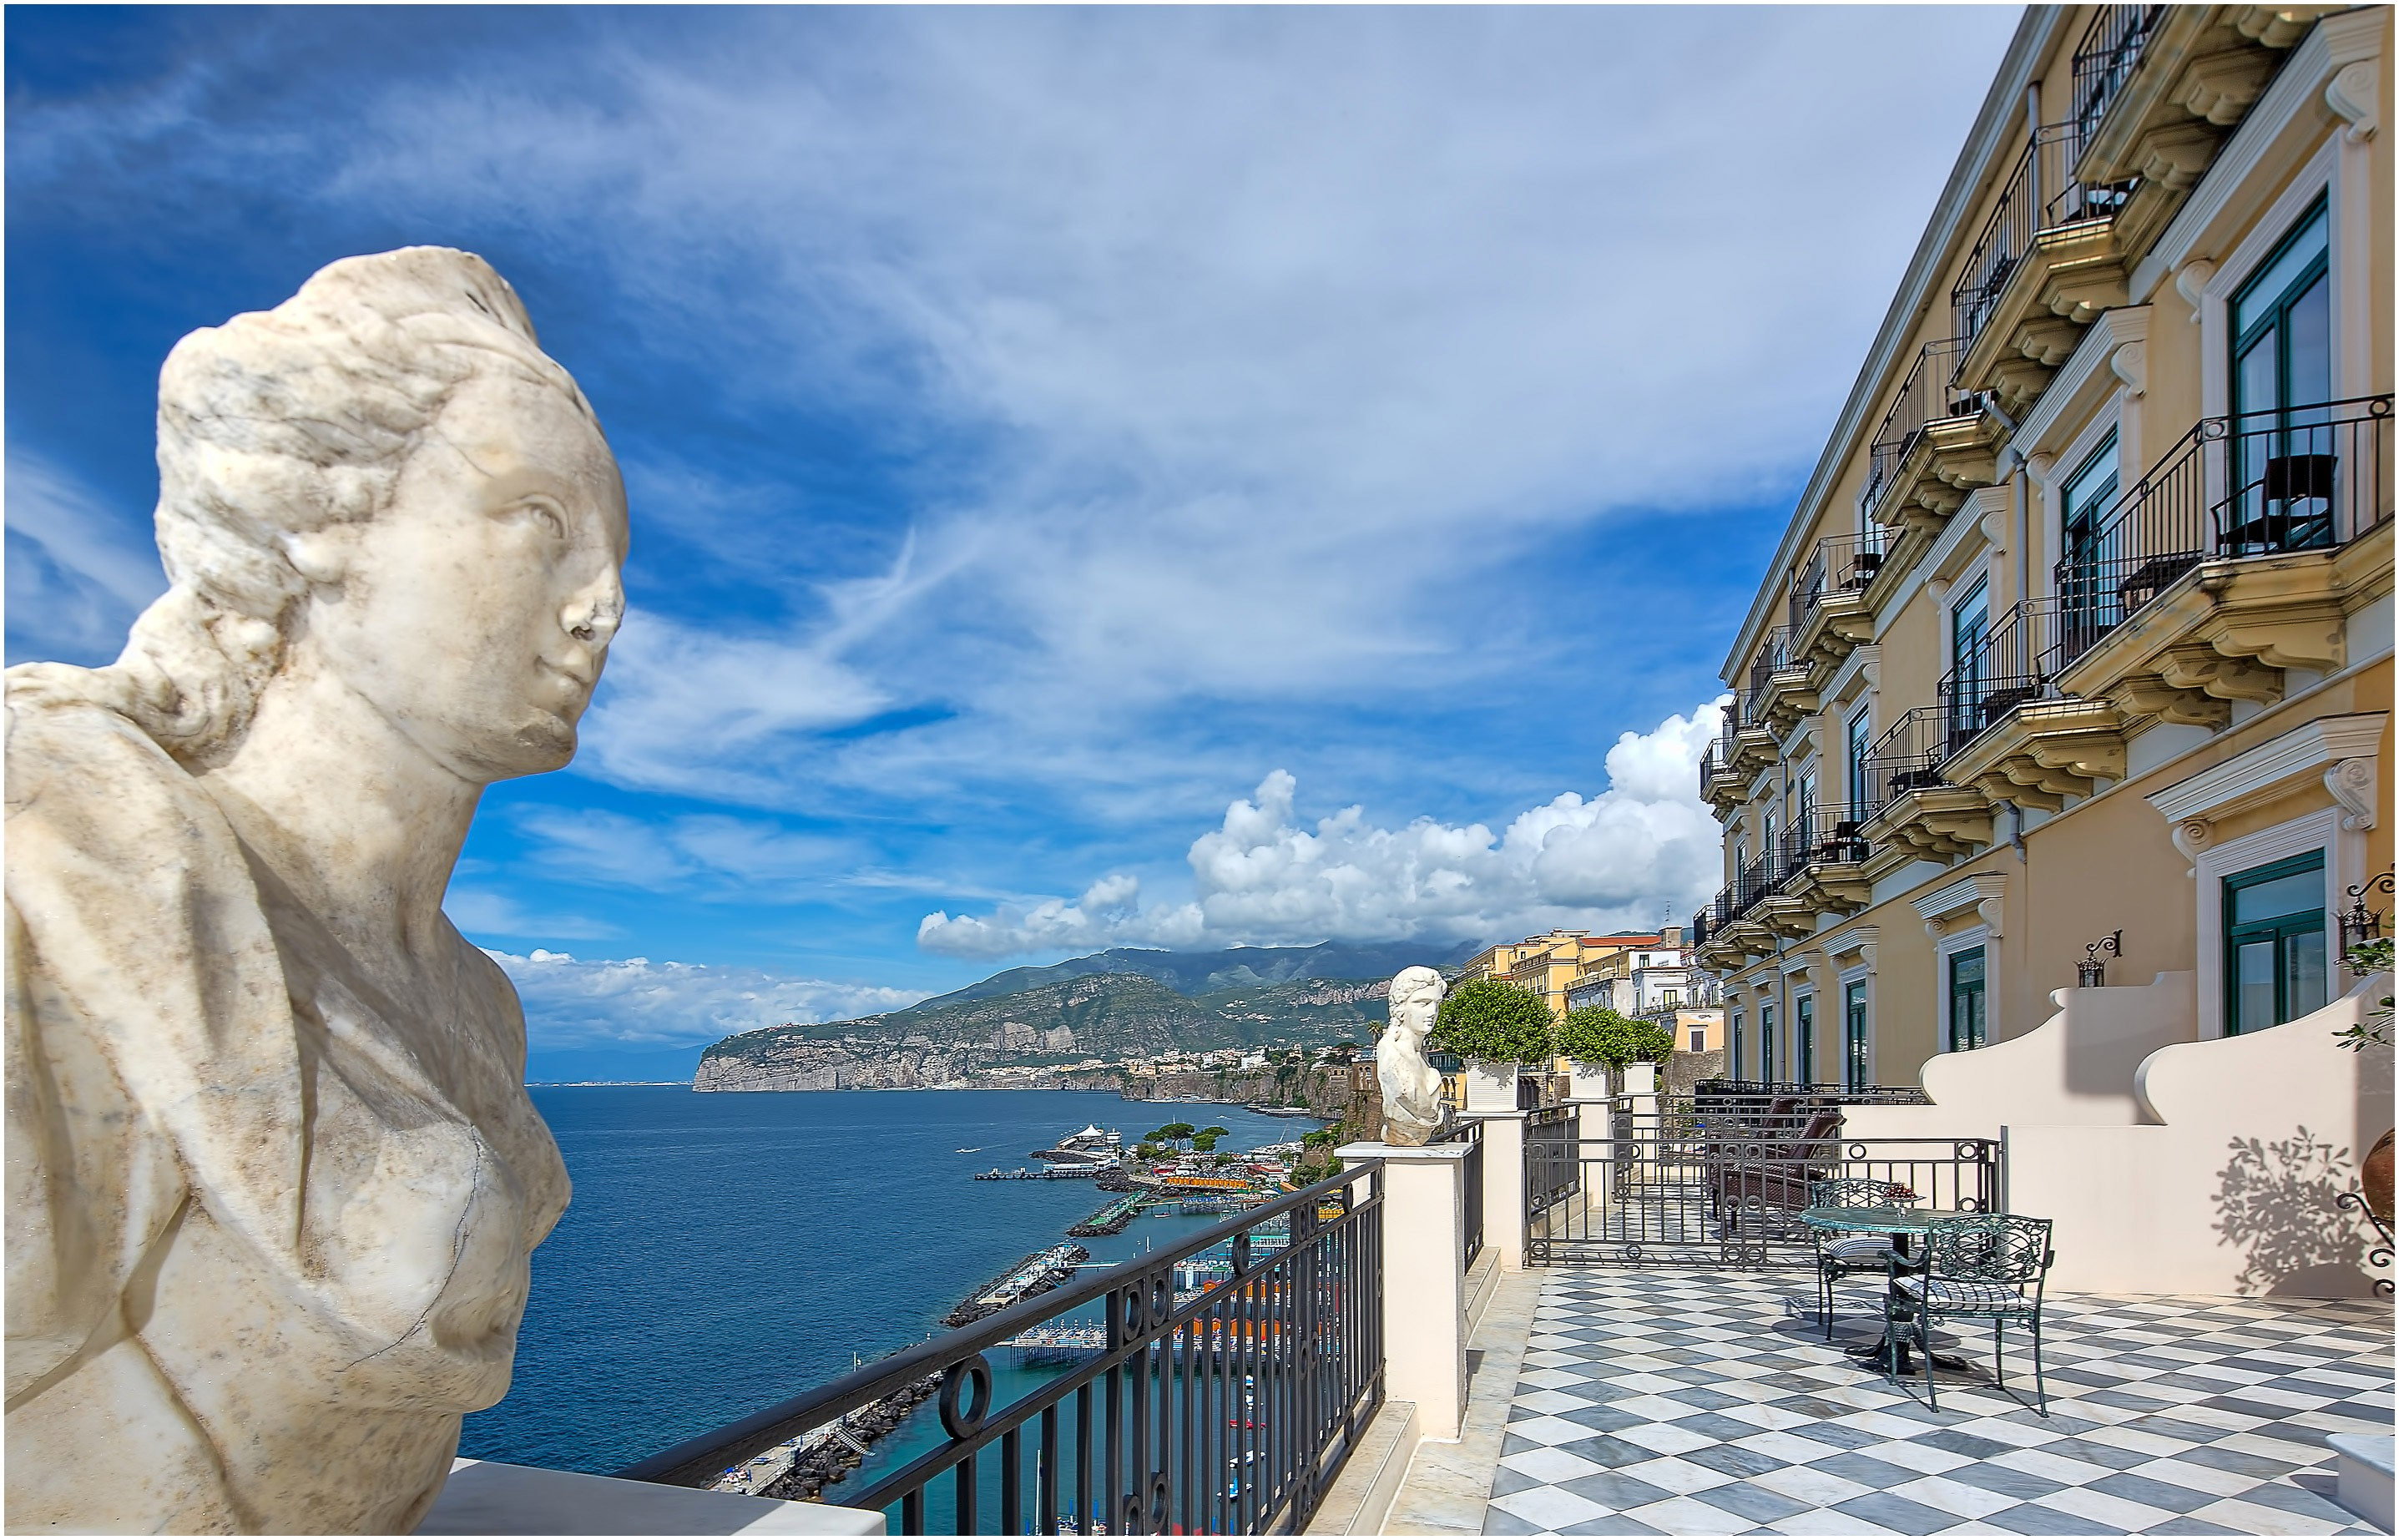 BELLEVUE SYRENE OFFICIAL WEBSITE BELLEVUE SYRENE SORRENTO OFFICIAL WEBSITE LUXURY HOTEL SORRENTO FIVE STAR HOTEL